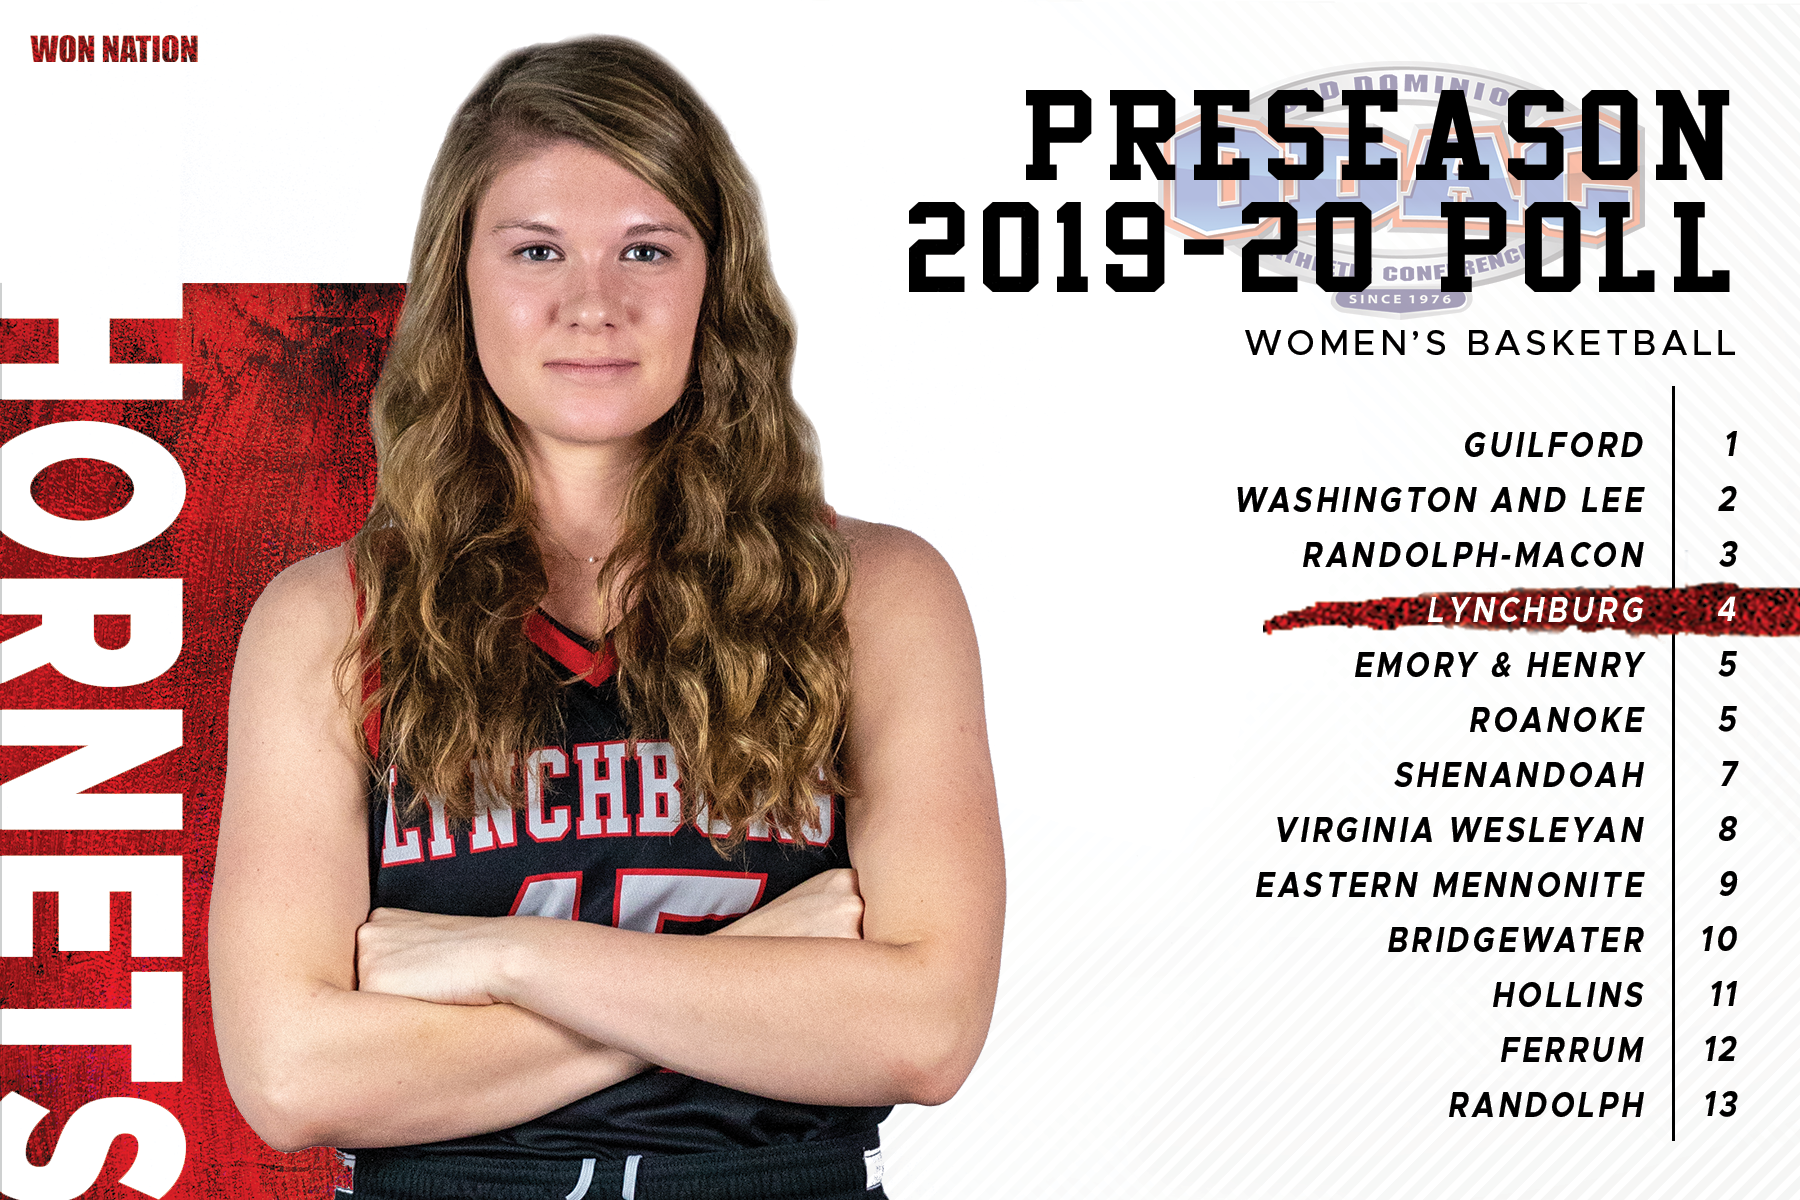 ODAC preseason basketball poll graphic showing Lynchburg fourth in rankings at right (rankings in story text). Kat Stanley pictured at left standing in uniform arms crossed atop red and white Hornets text art